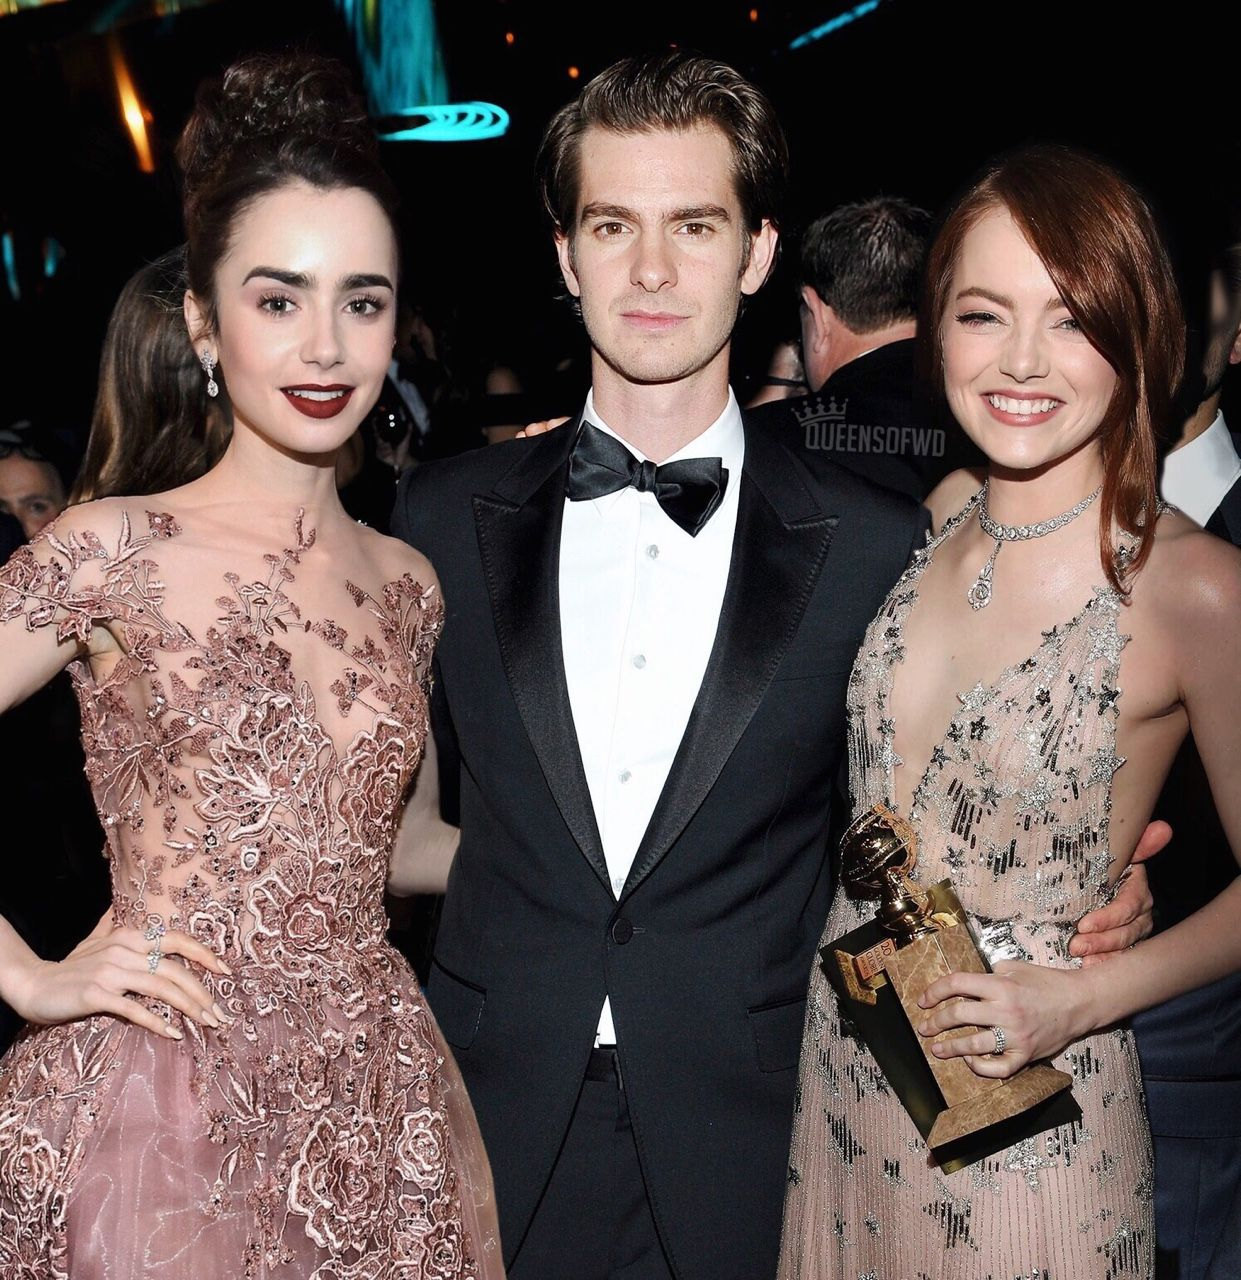 Queensofwd Lily Collins Andrew Garfield And Emma Stone